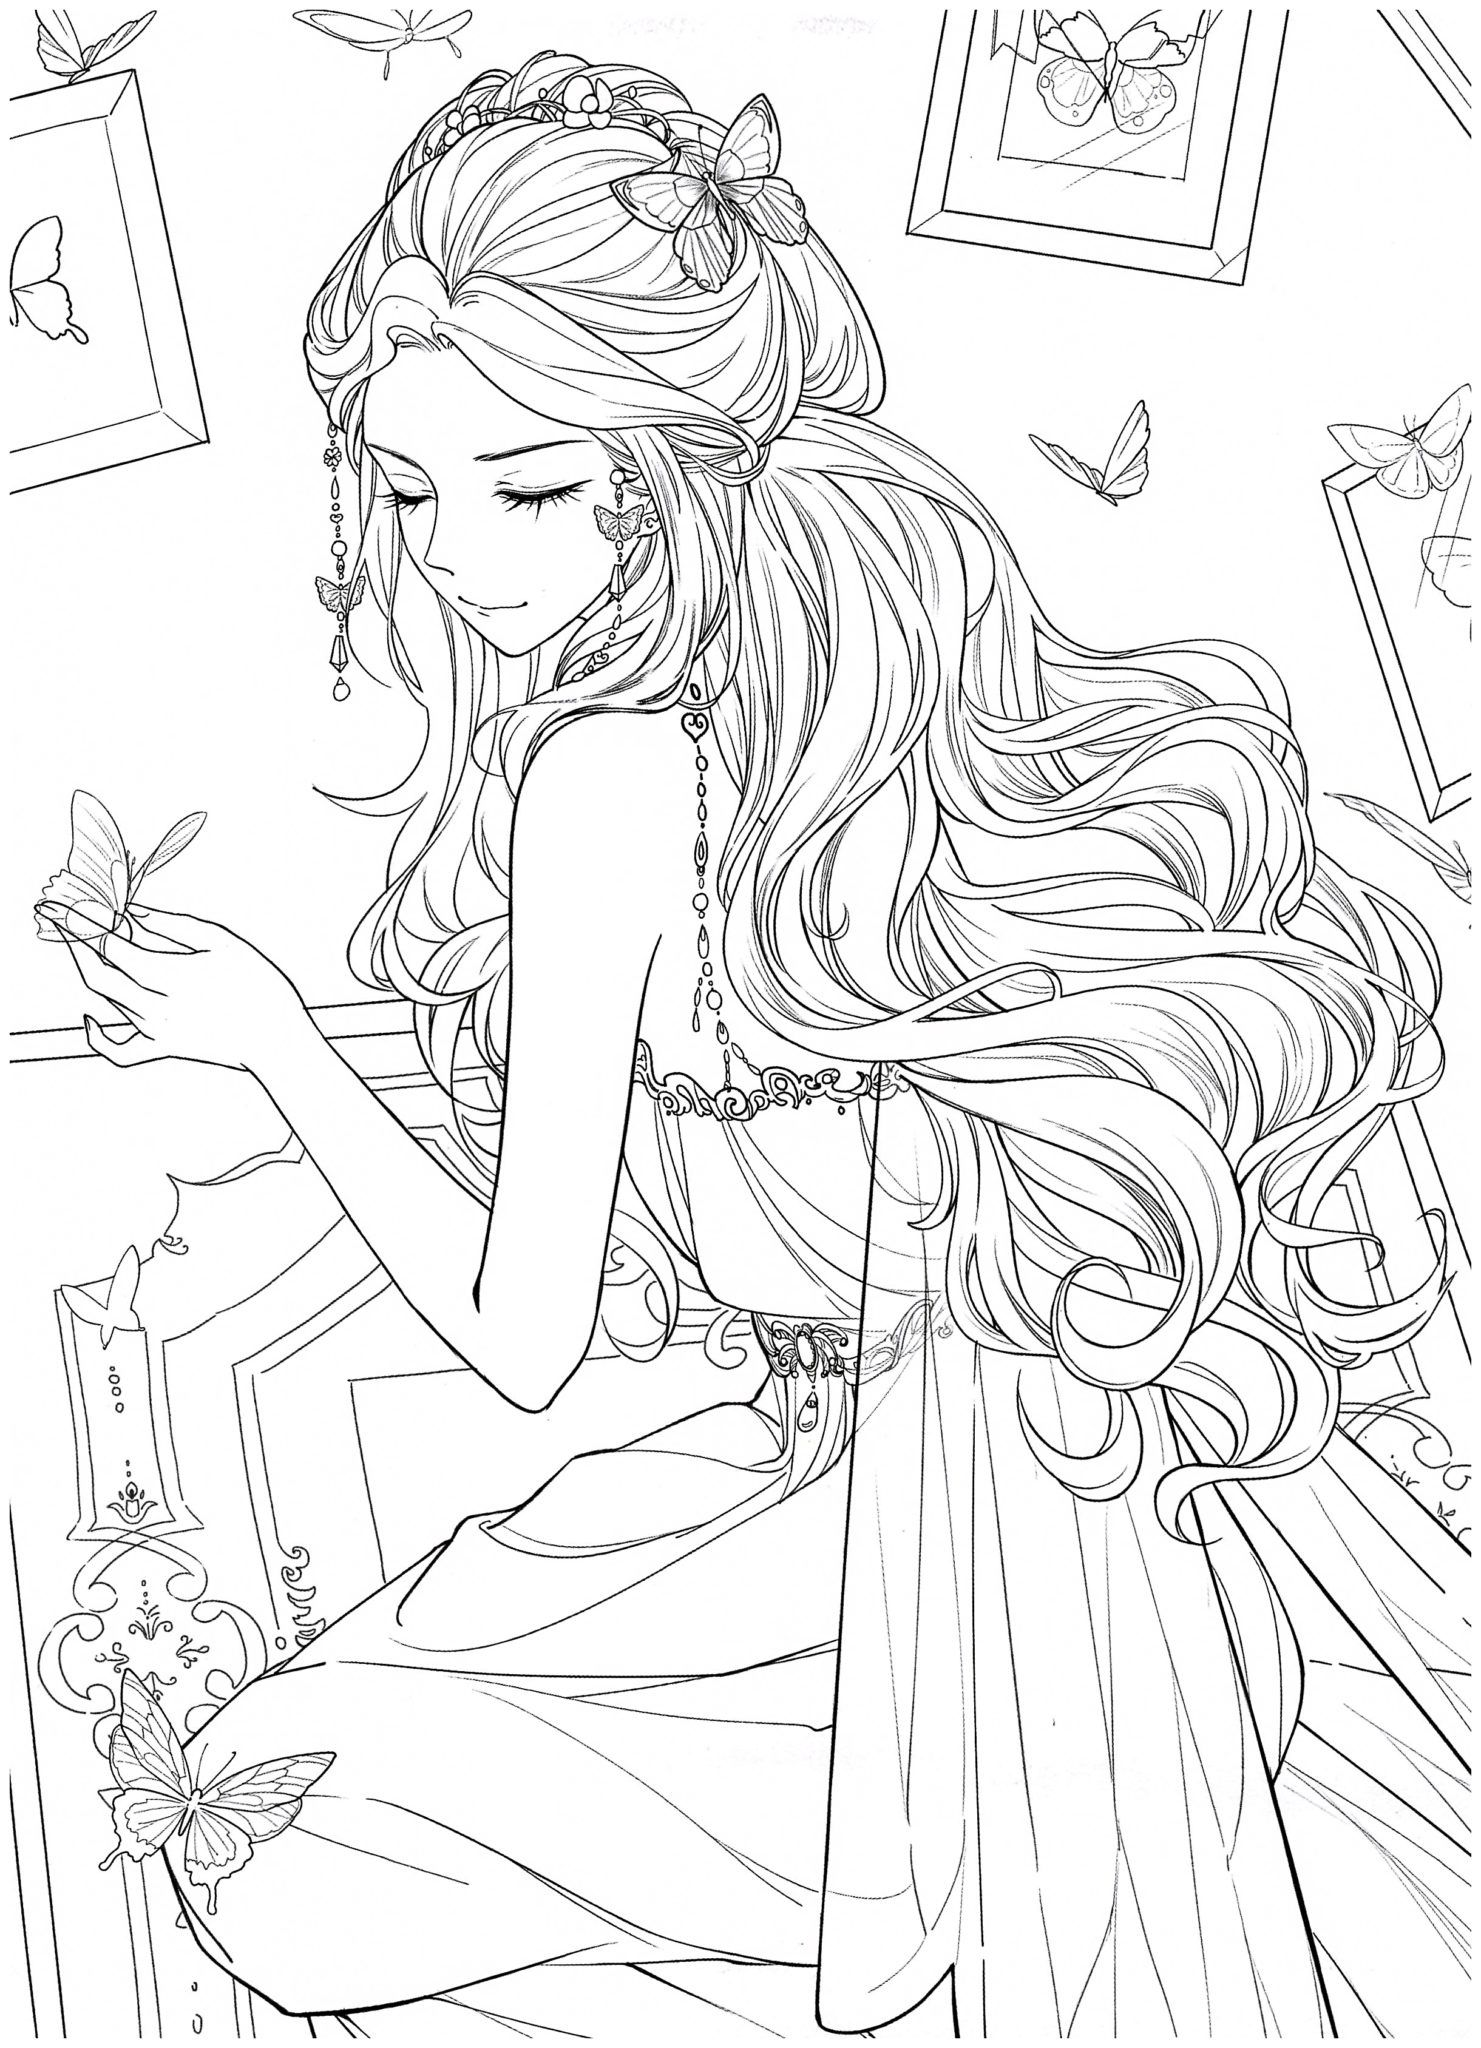 Chinese Portrait Coloring Ebook Vol 13 Floral Wedding Kayliebooks Coloring Book Art Manga Coloring Book Detailed Coloring Pages [ 2048 x 1481 Pixel ]